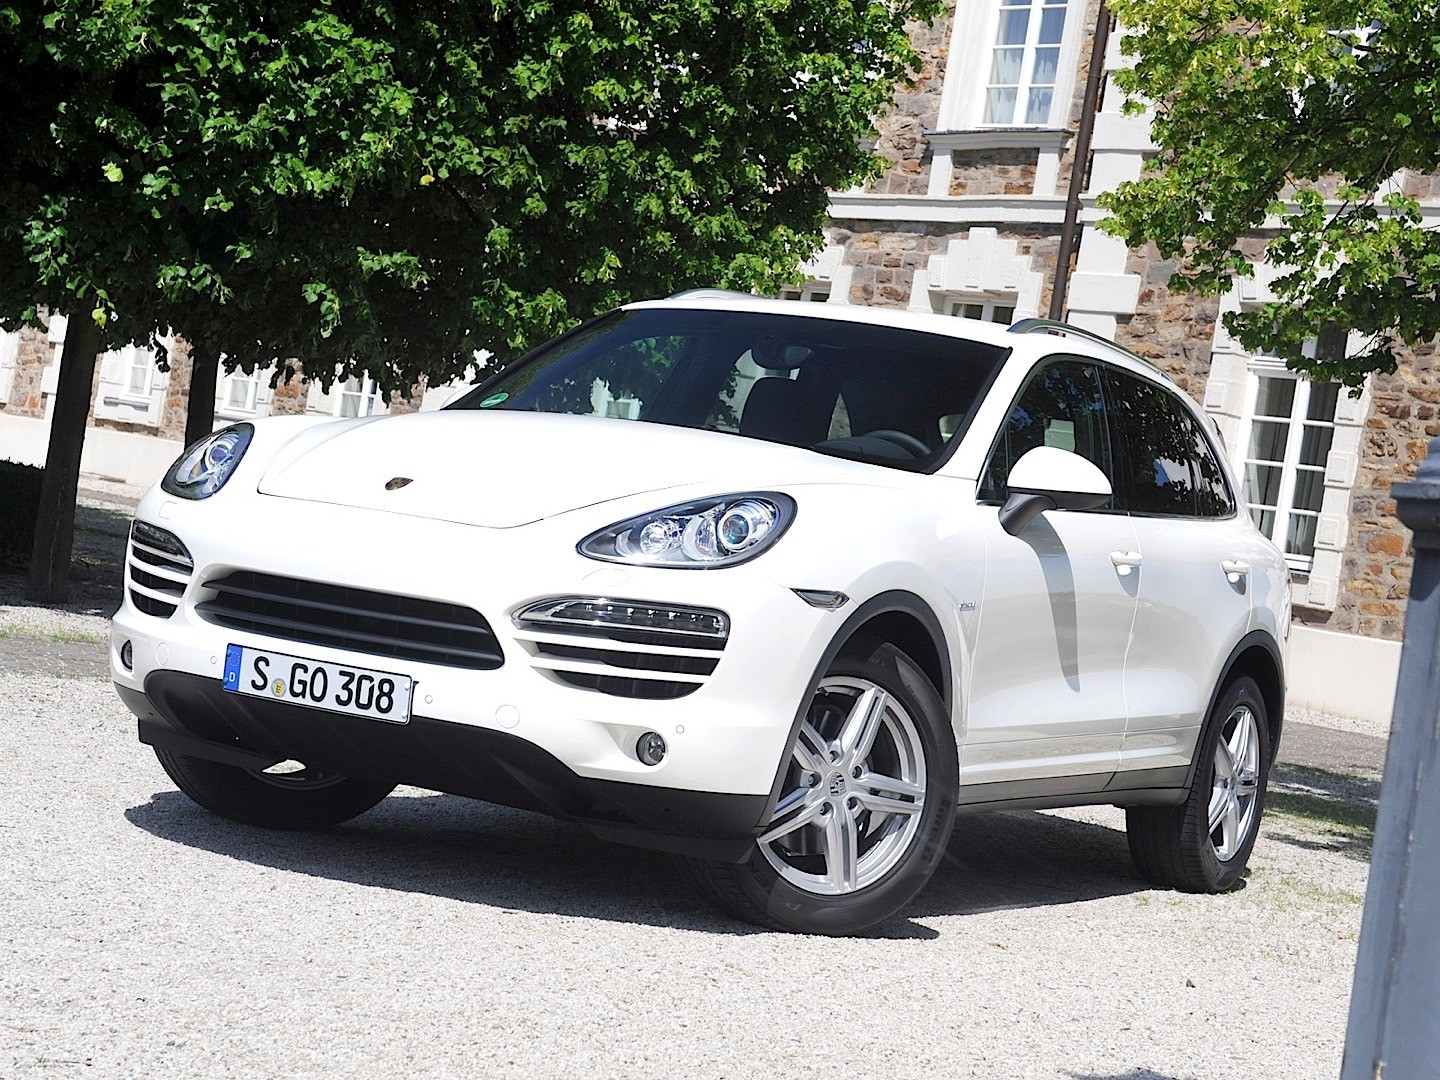 2017 Porsche Cayenne Diesel photo - 1